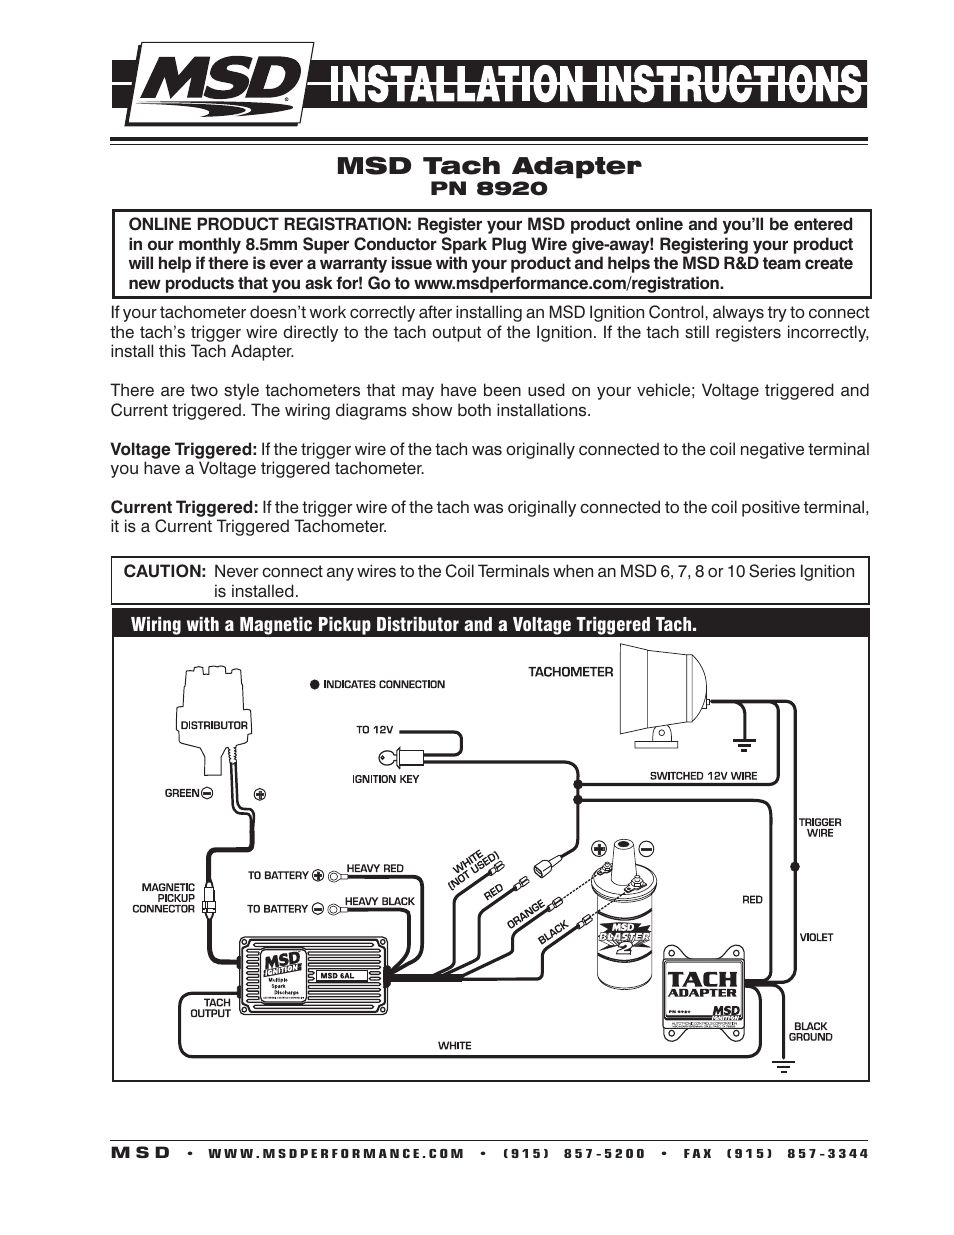 msd 8920 tach adapter wiring diagram